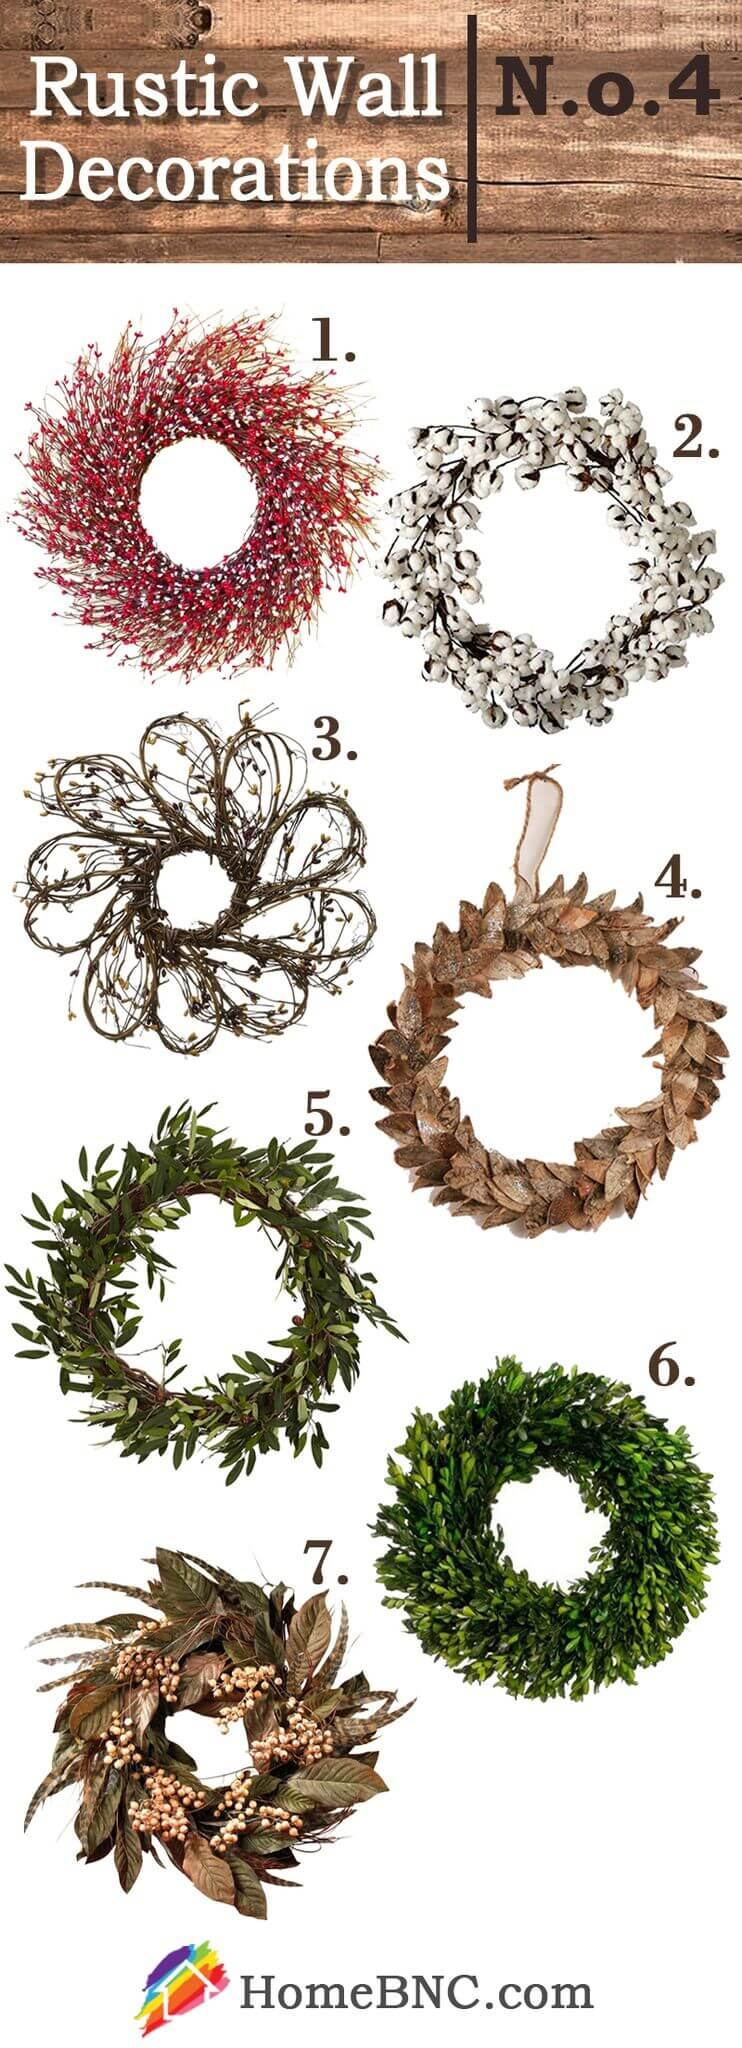 Wreaths and Floral Decor